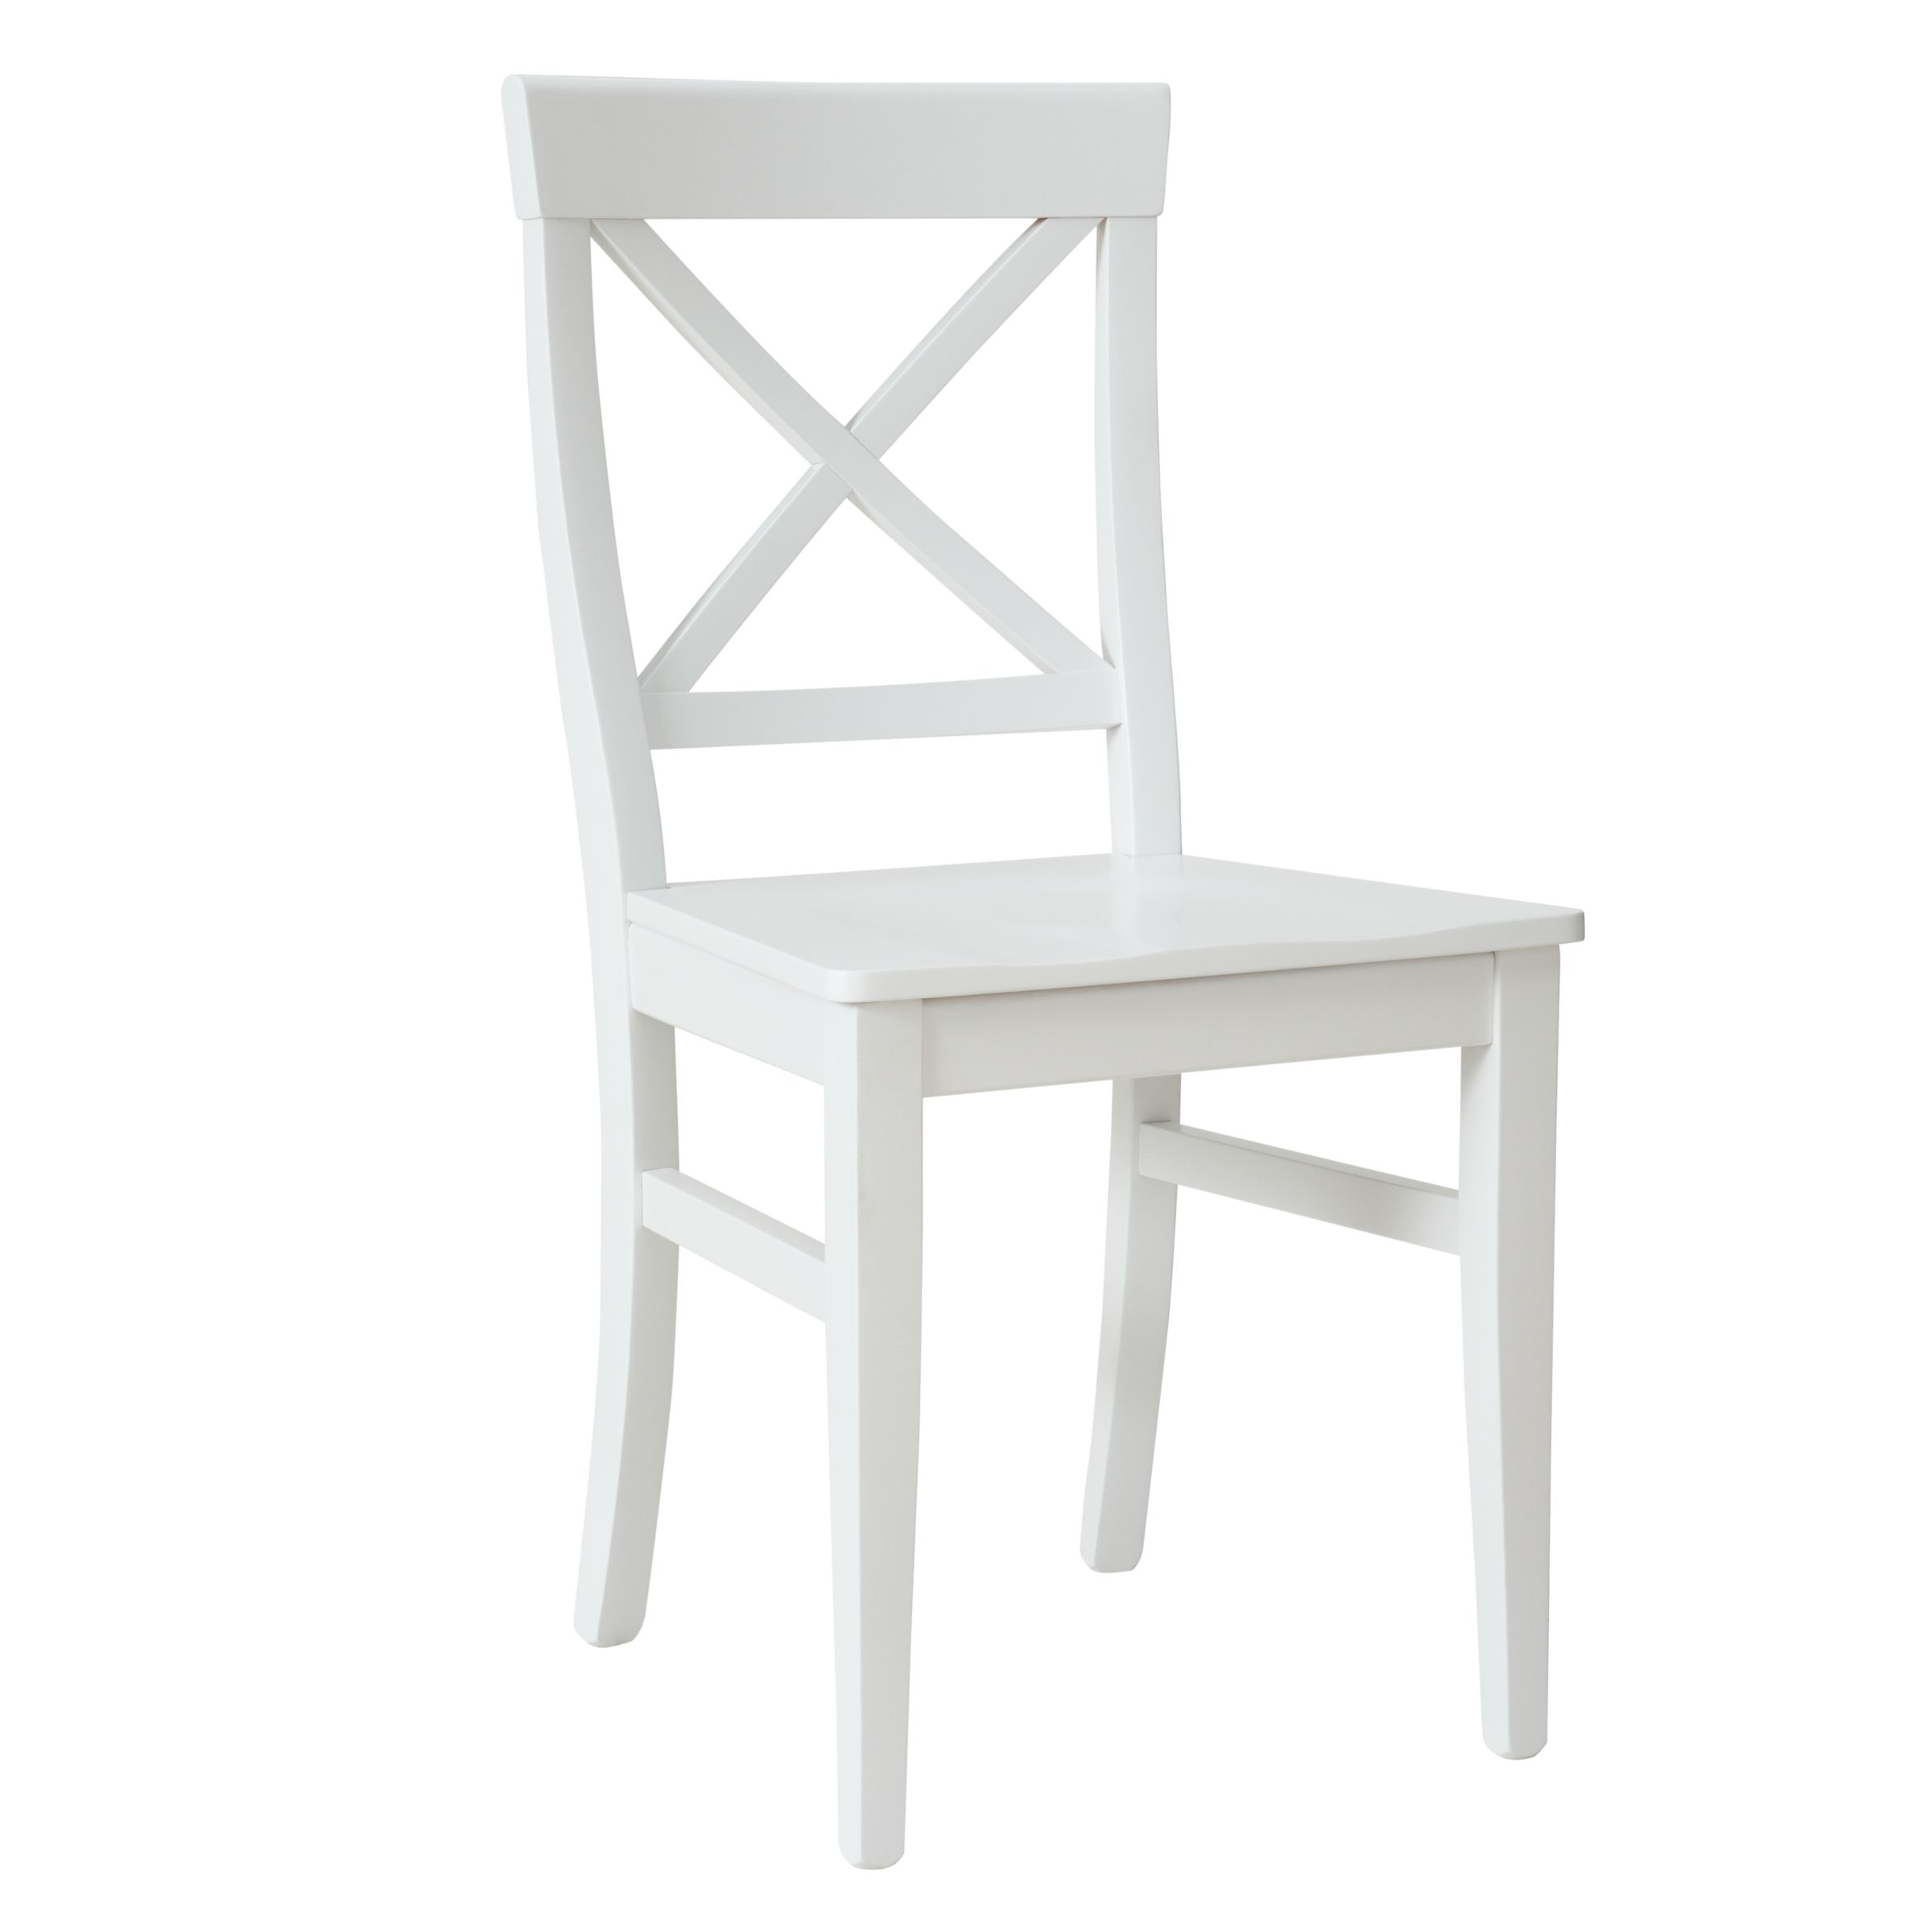 cross back dining chairs white antique ladder with arms john lewis pemberley chair at partners buypemberley online johnlewis com